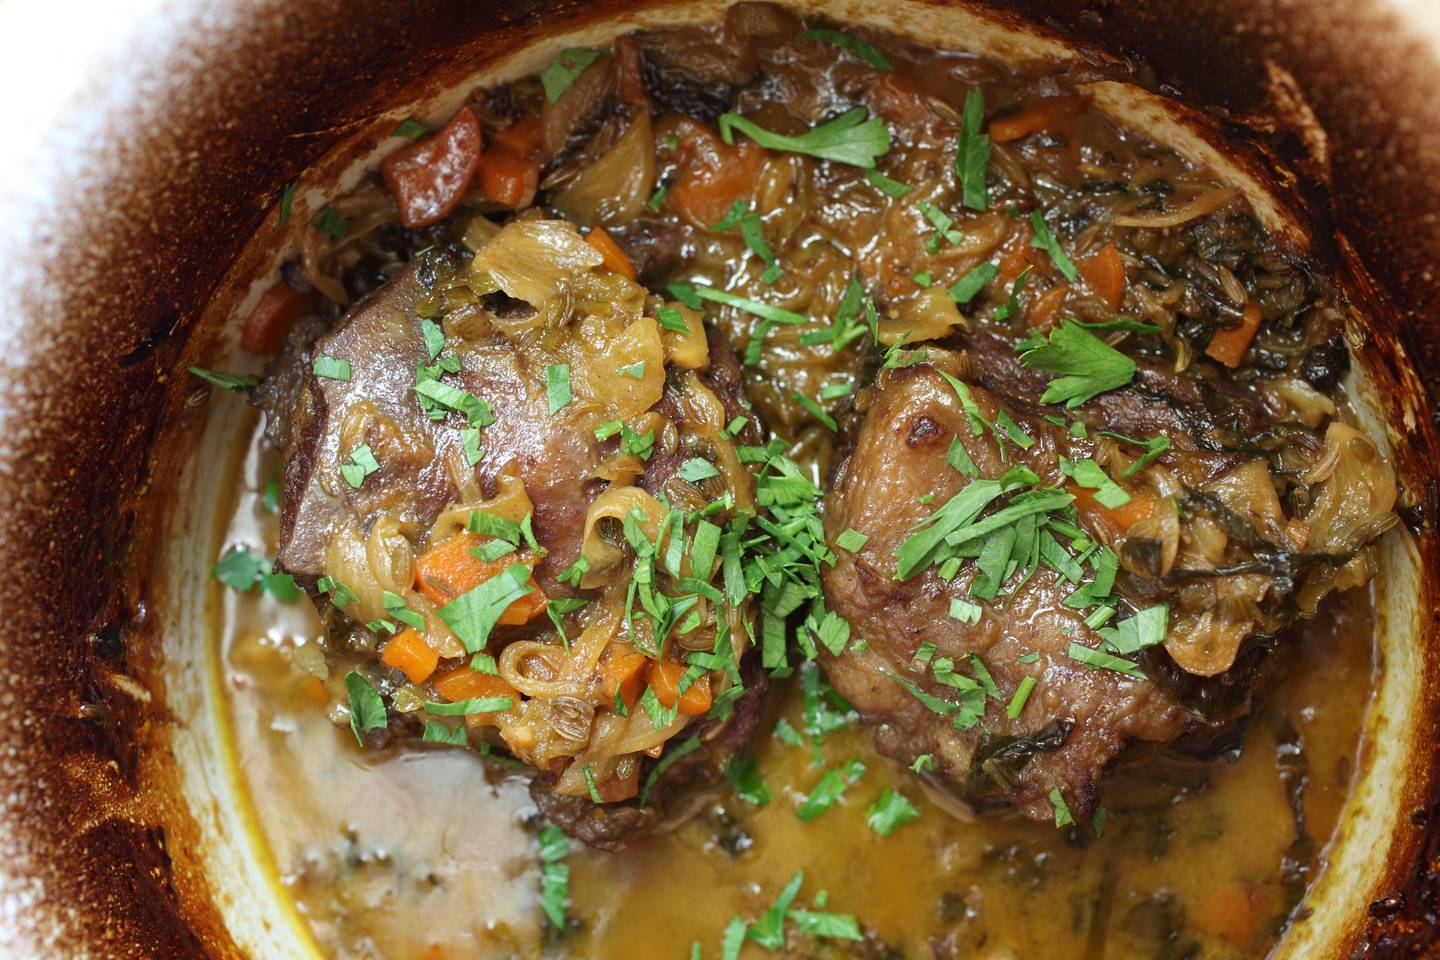 ... braised in guinness braised beef and onions baked honey mustard corned